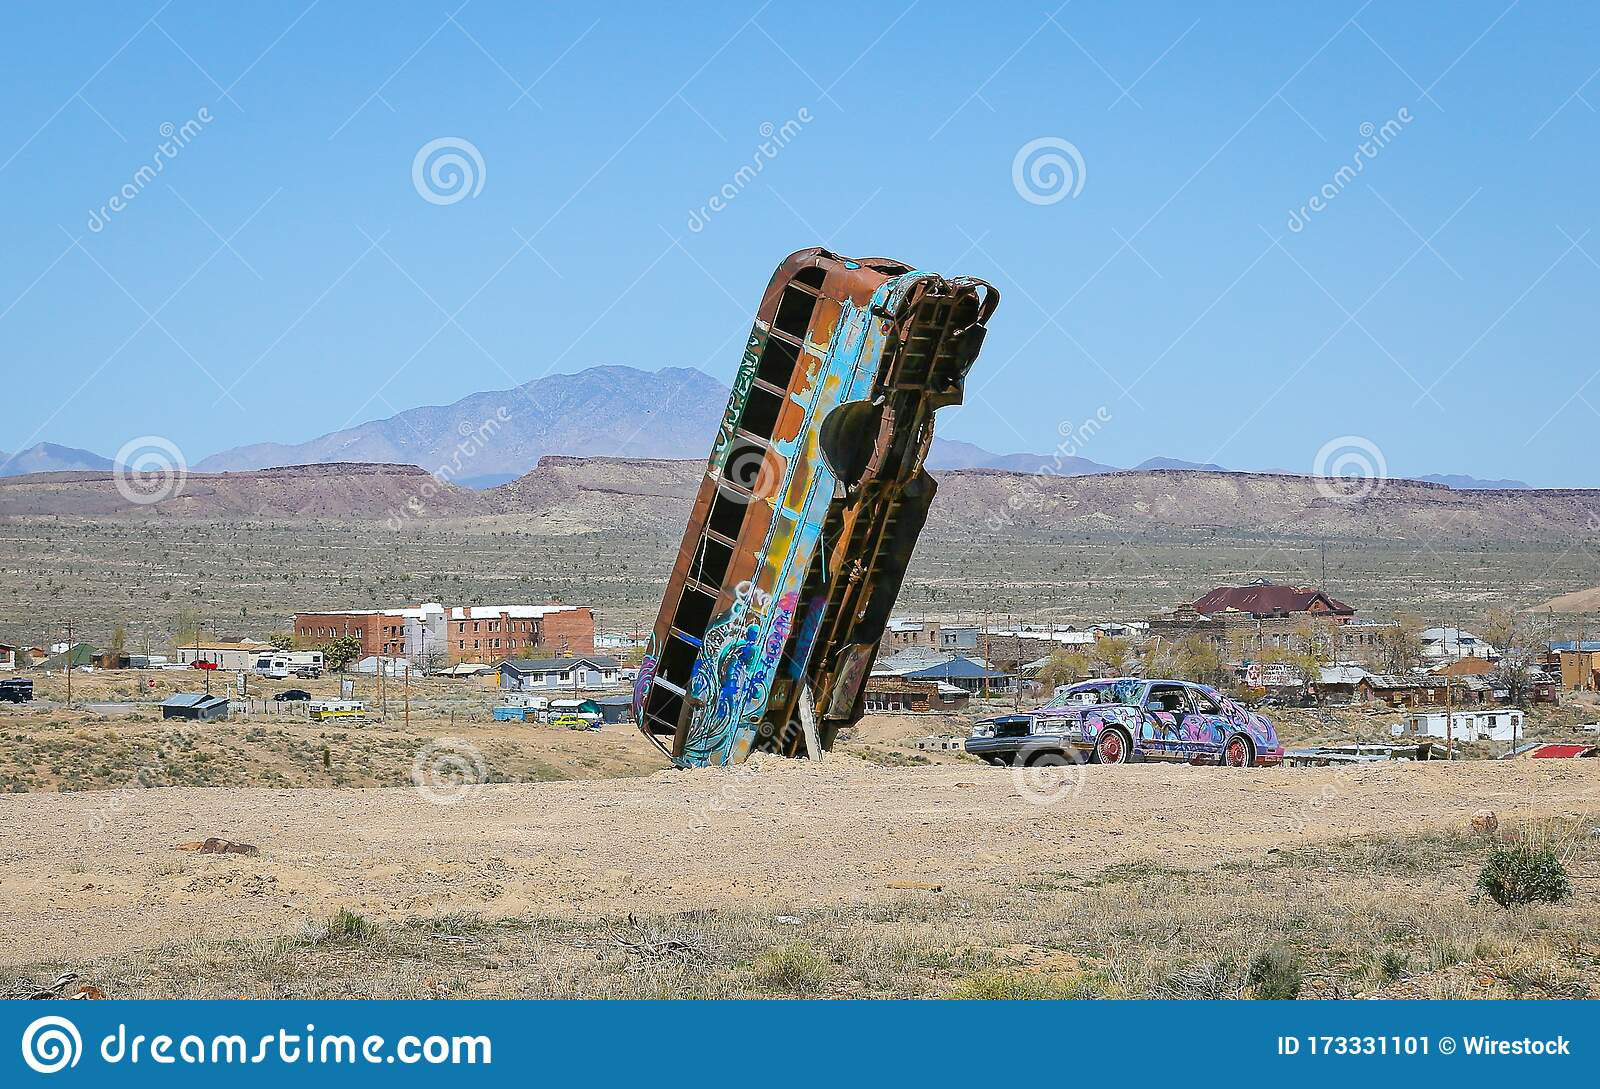 Goldfield Nevada S International Car Forest Of The Last Church Stock Image Image Of Chad Installation 173331101